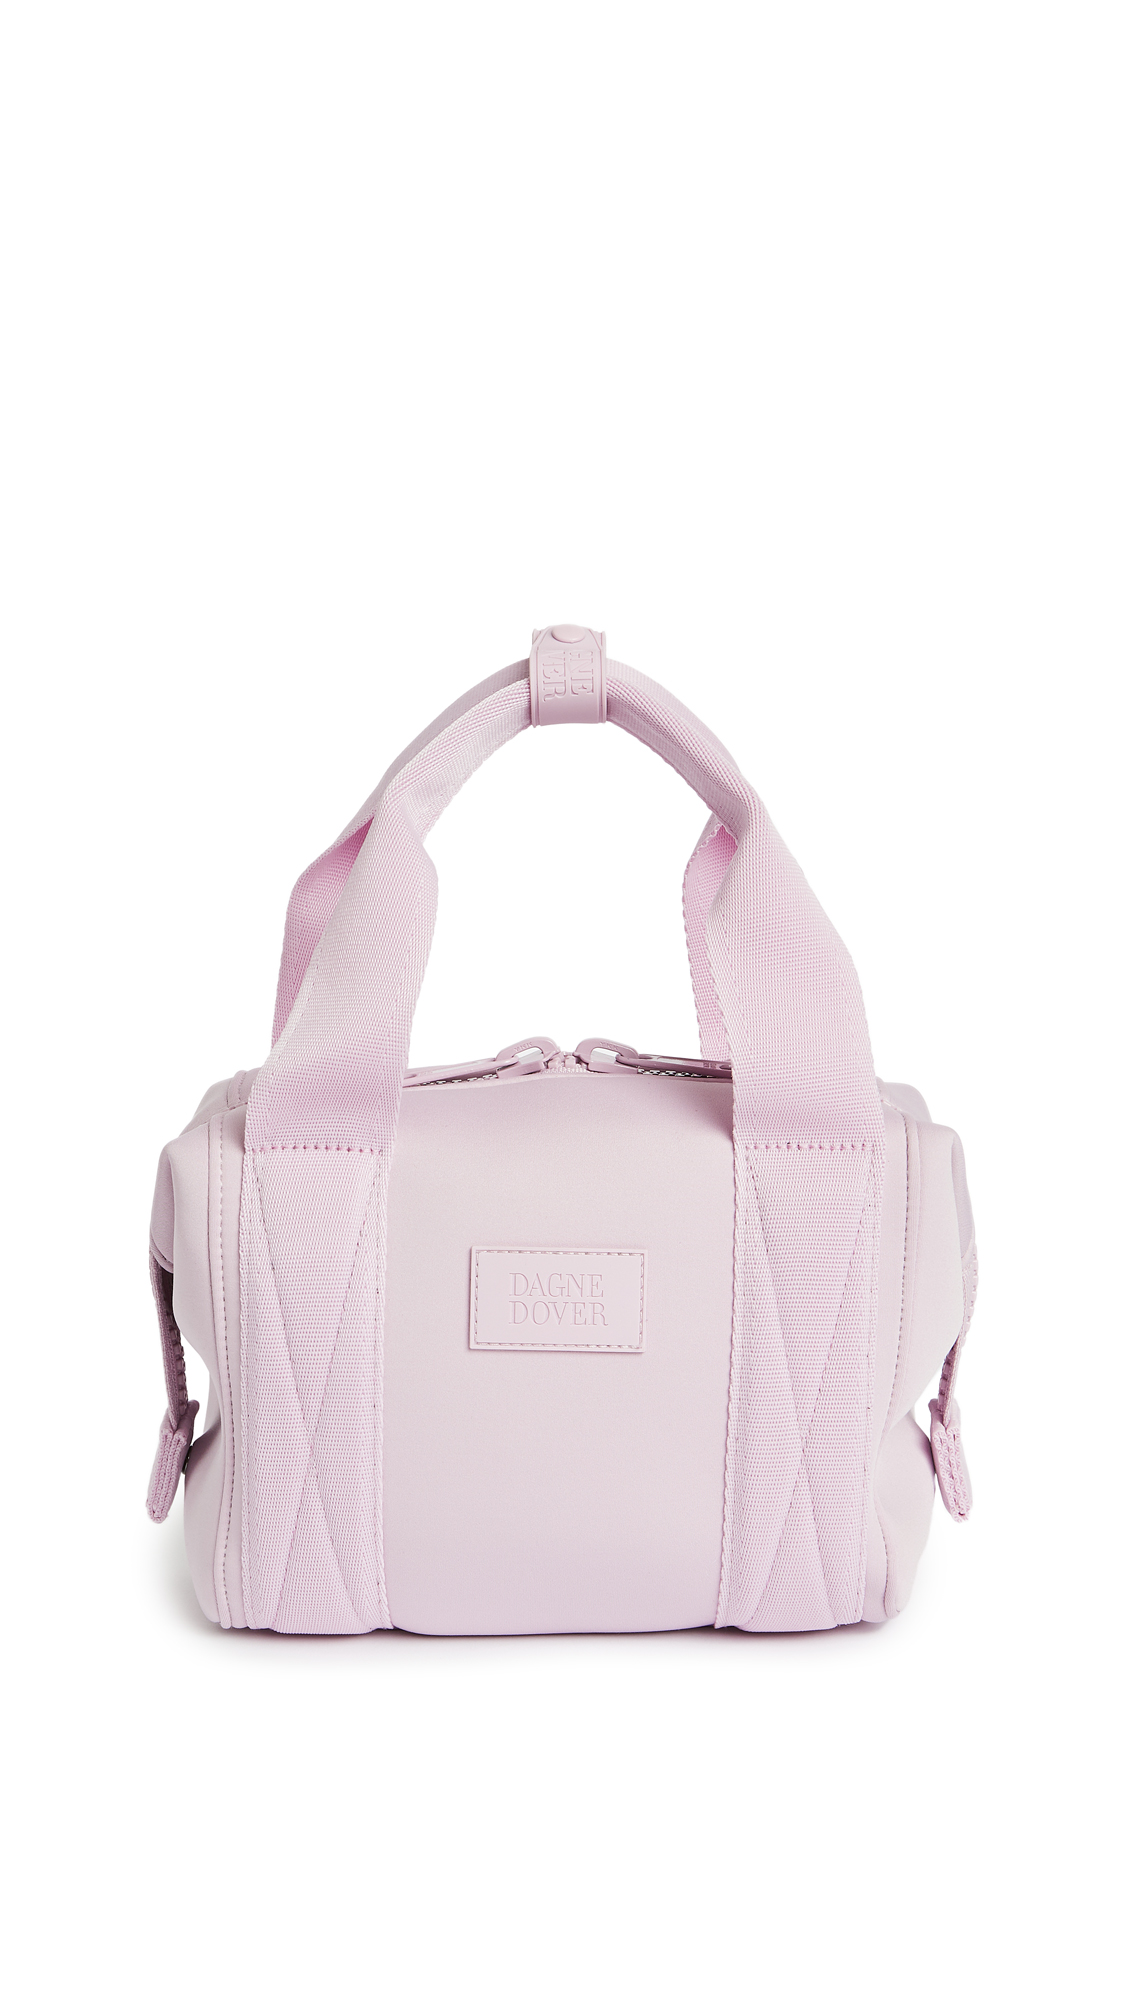 Dagne Dover Extra Small Landon Carryall